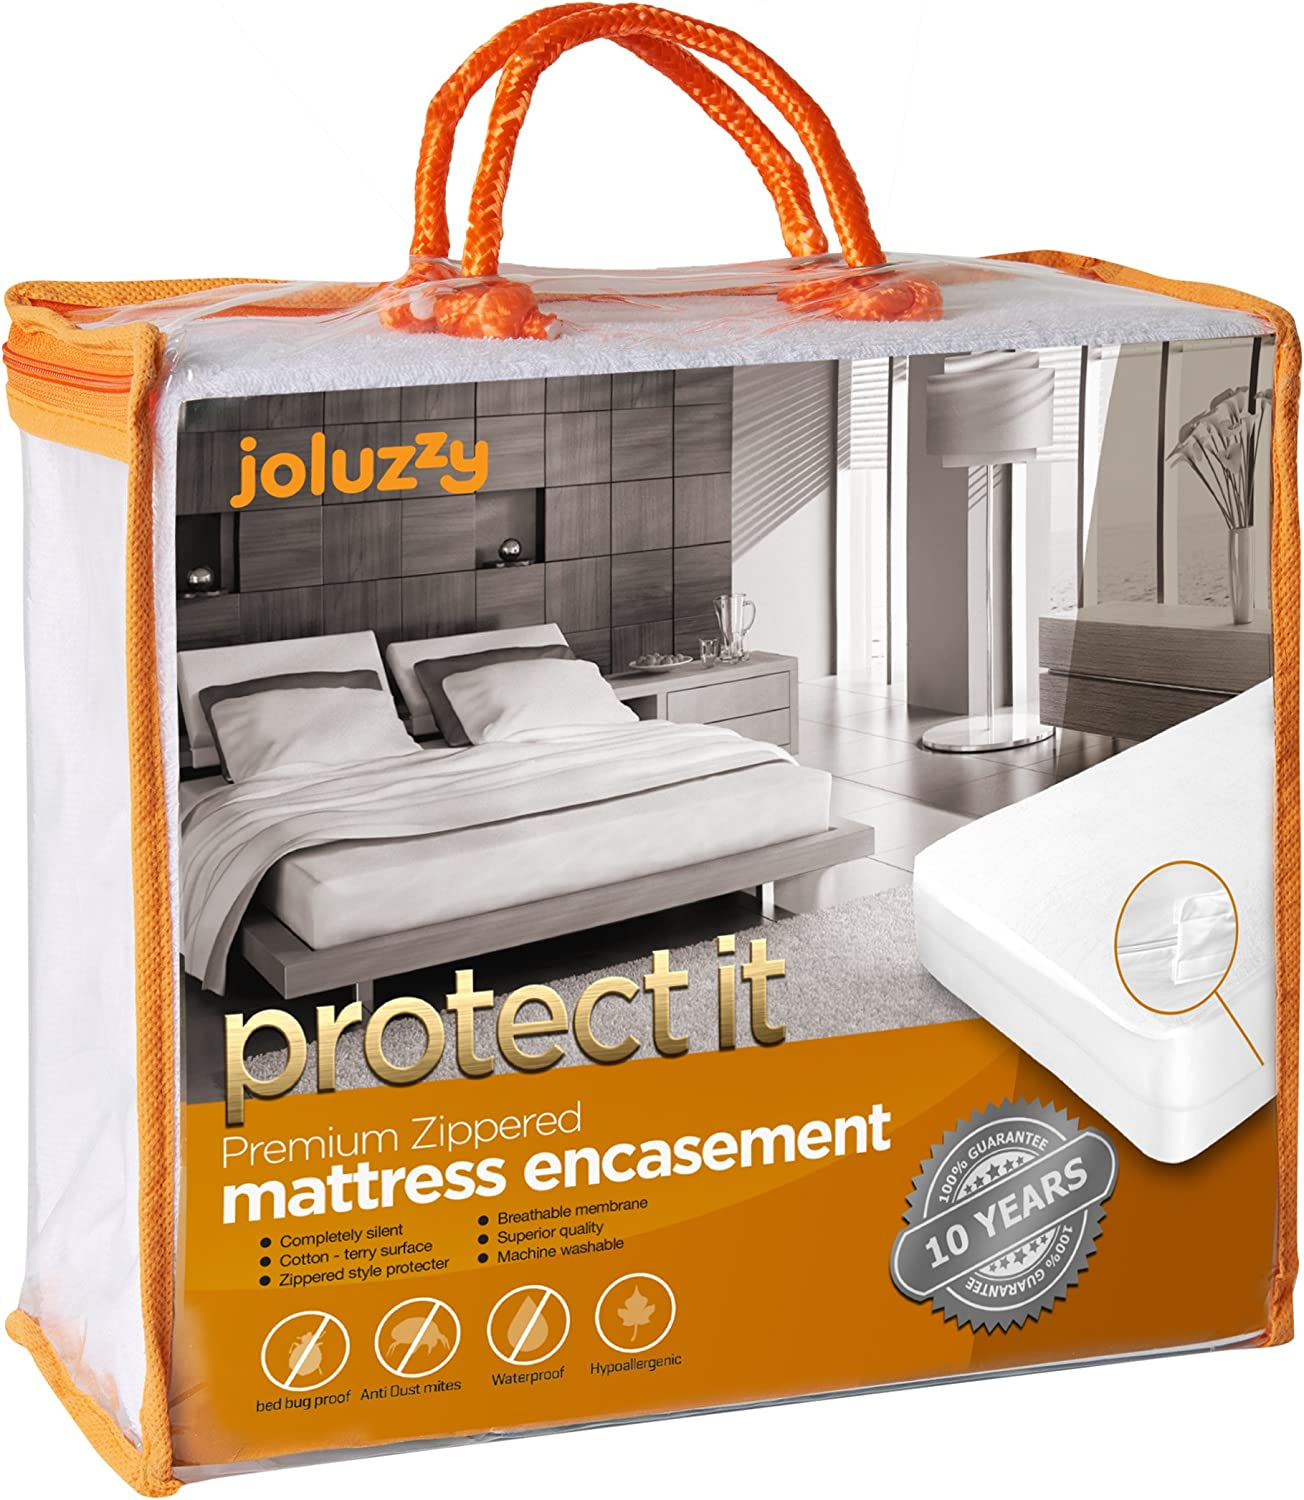 joluzzy Zippered Mattress Protector - 100% Bed Bug Proof/Waterproof Six-Sided Mattress Encasement - Cotton Terry, Breathable, Noiseless, Hypoallergenic, Vinyl-Free, Twin-XL Size